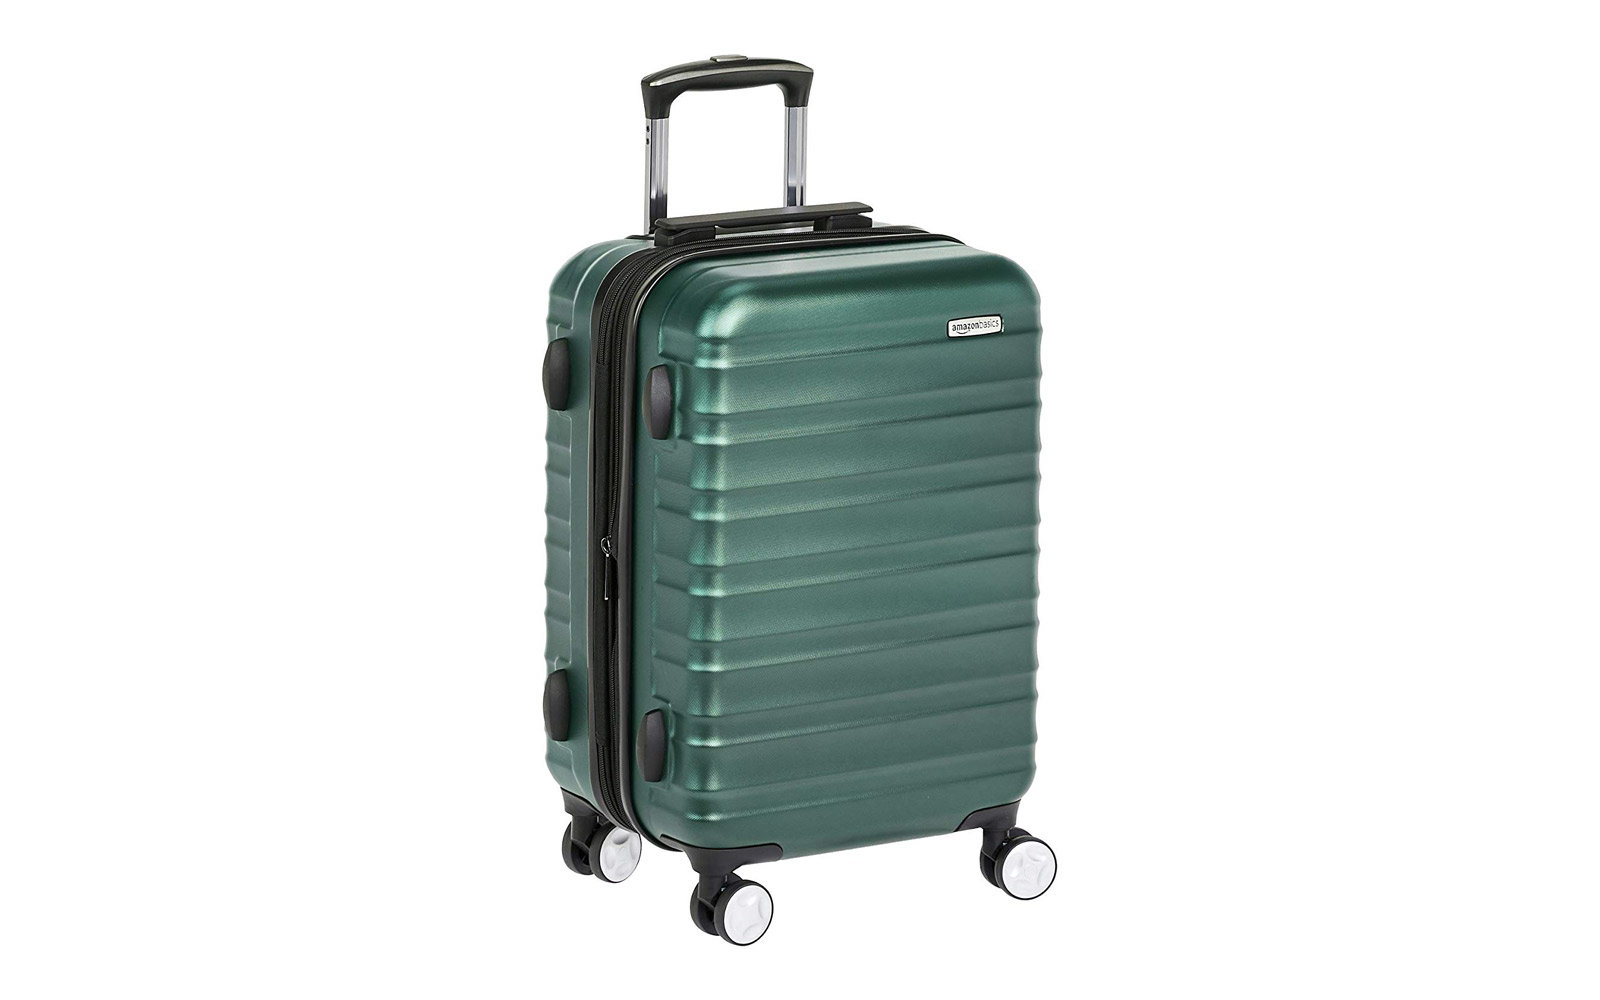 Best Affordable Carry-on  AmazonBasics 20-inch Hardside Spinner Luggage 0ed240cc66174